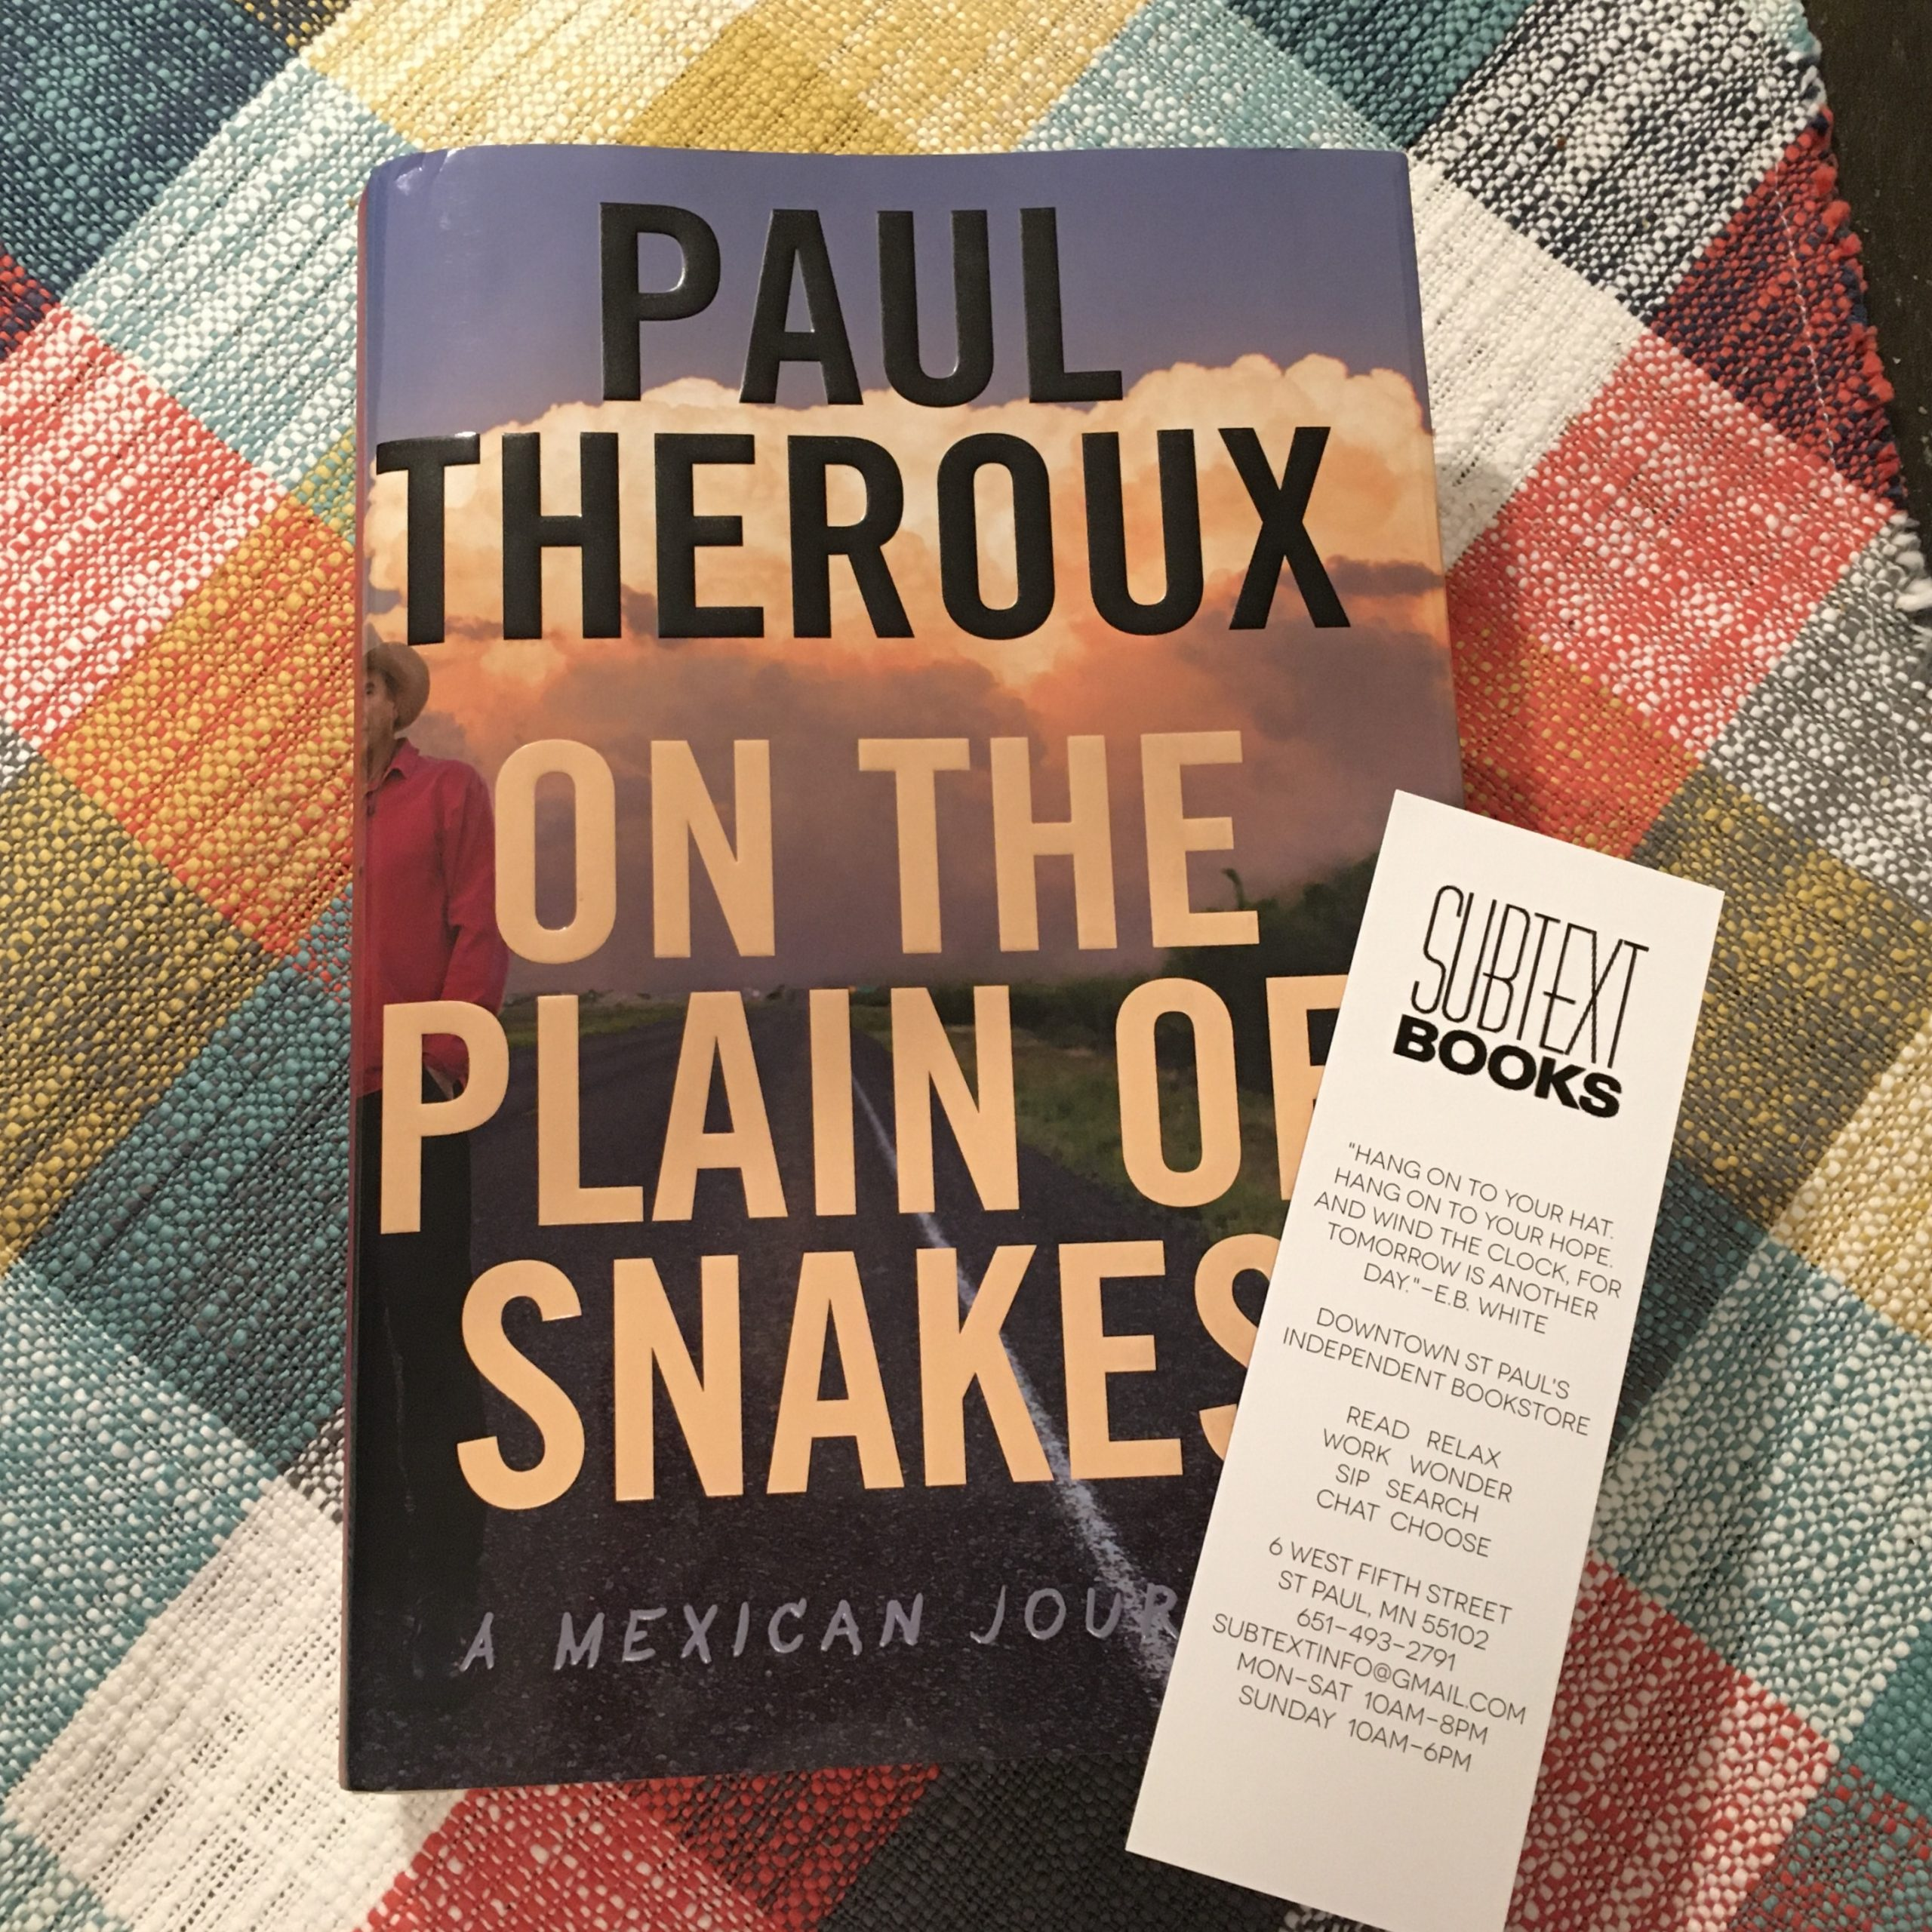 On the Plain of Snakes book by Paul Theroux and a Subtext Books bookmark on a table